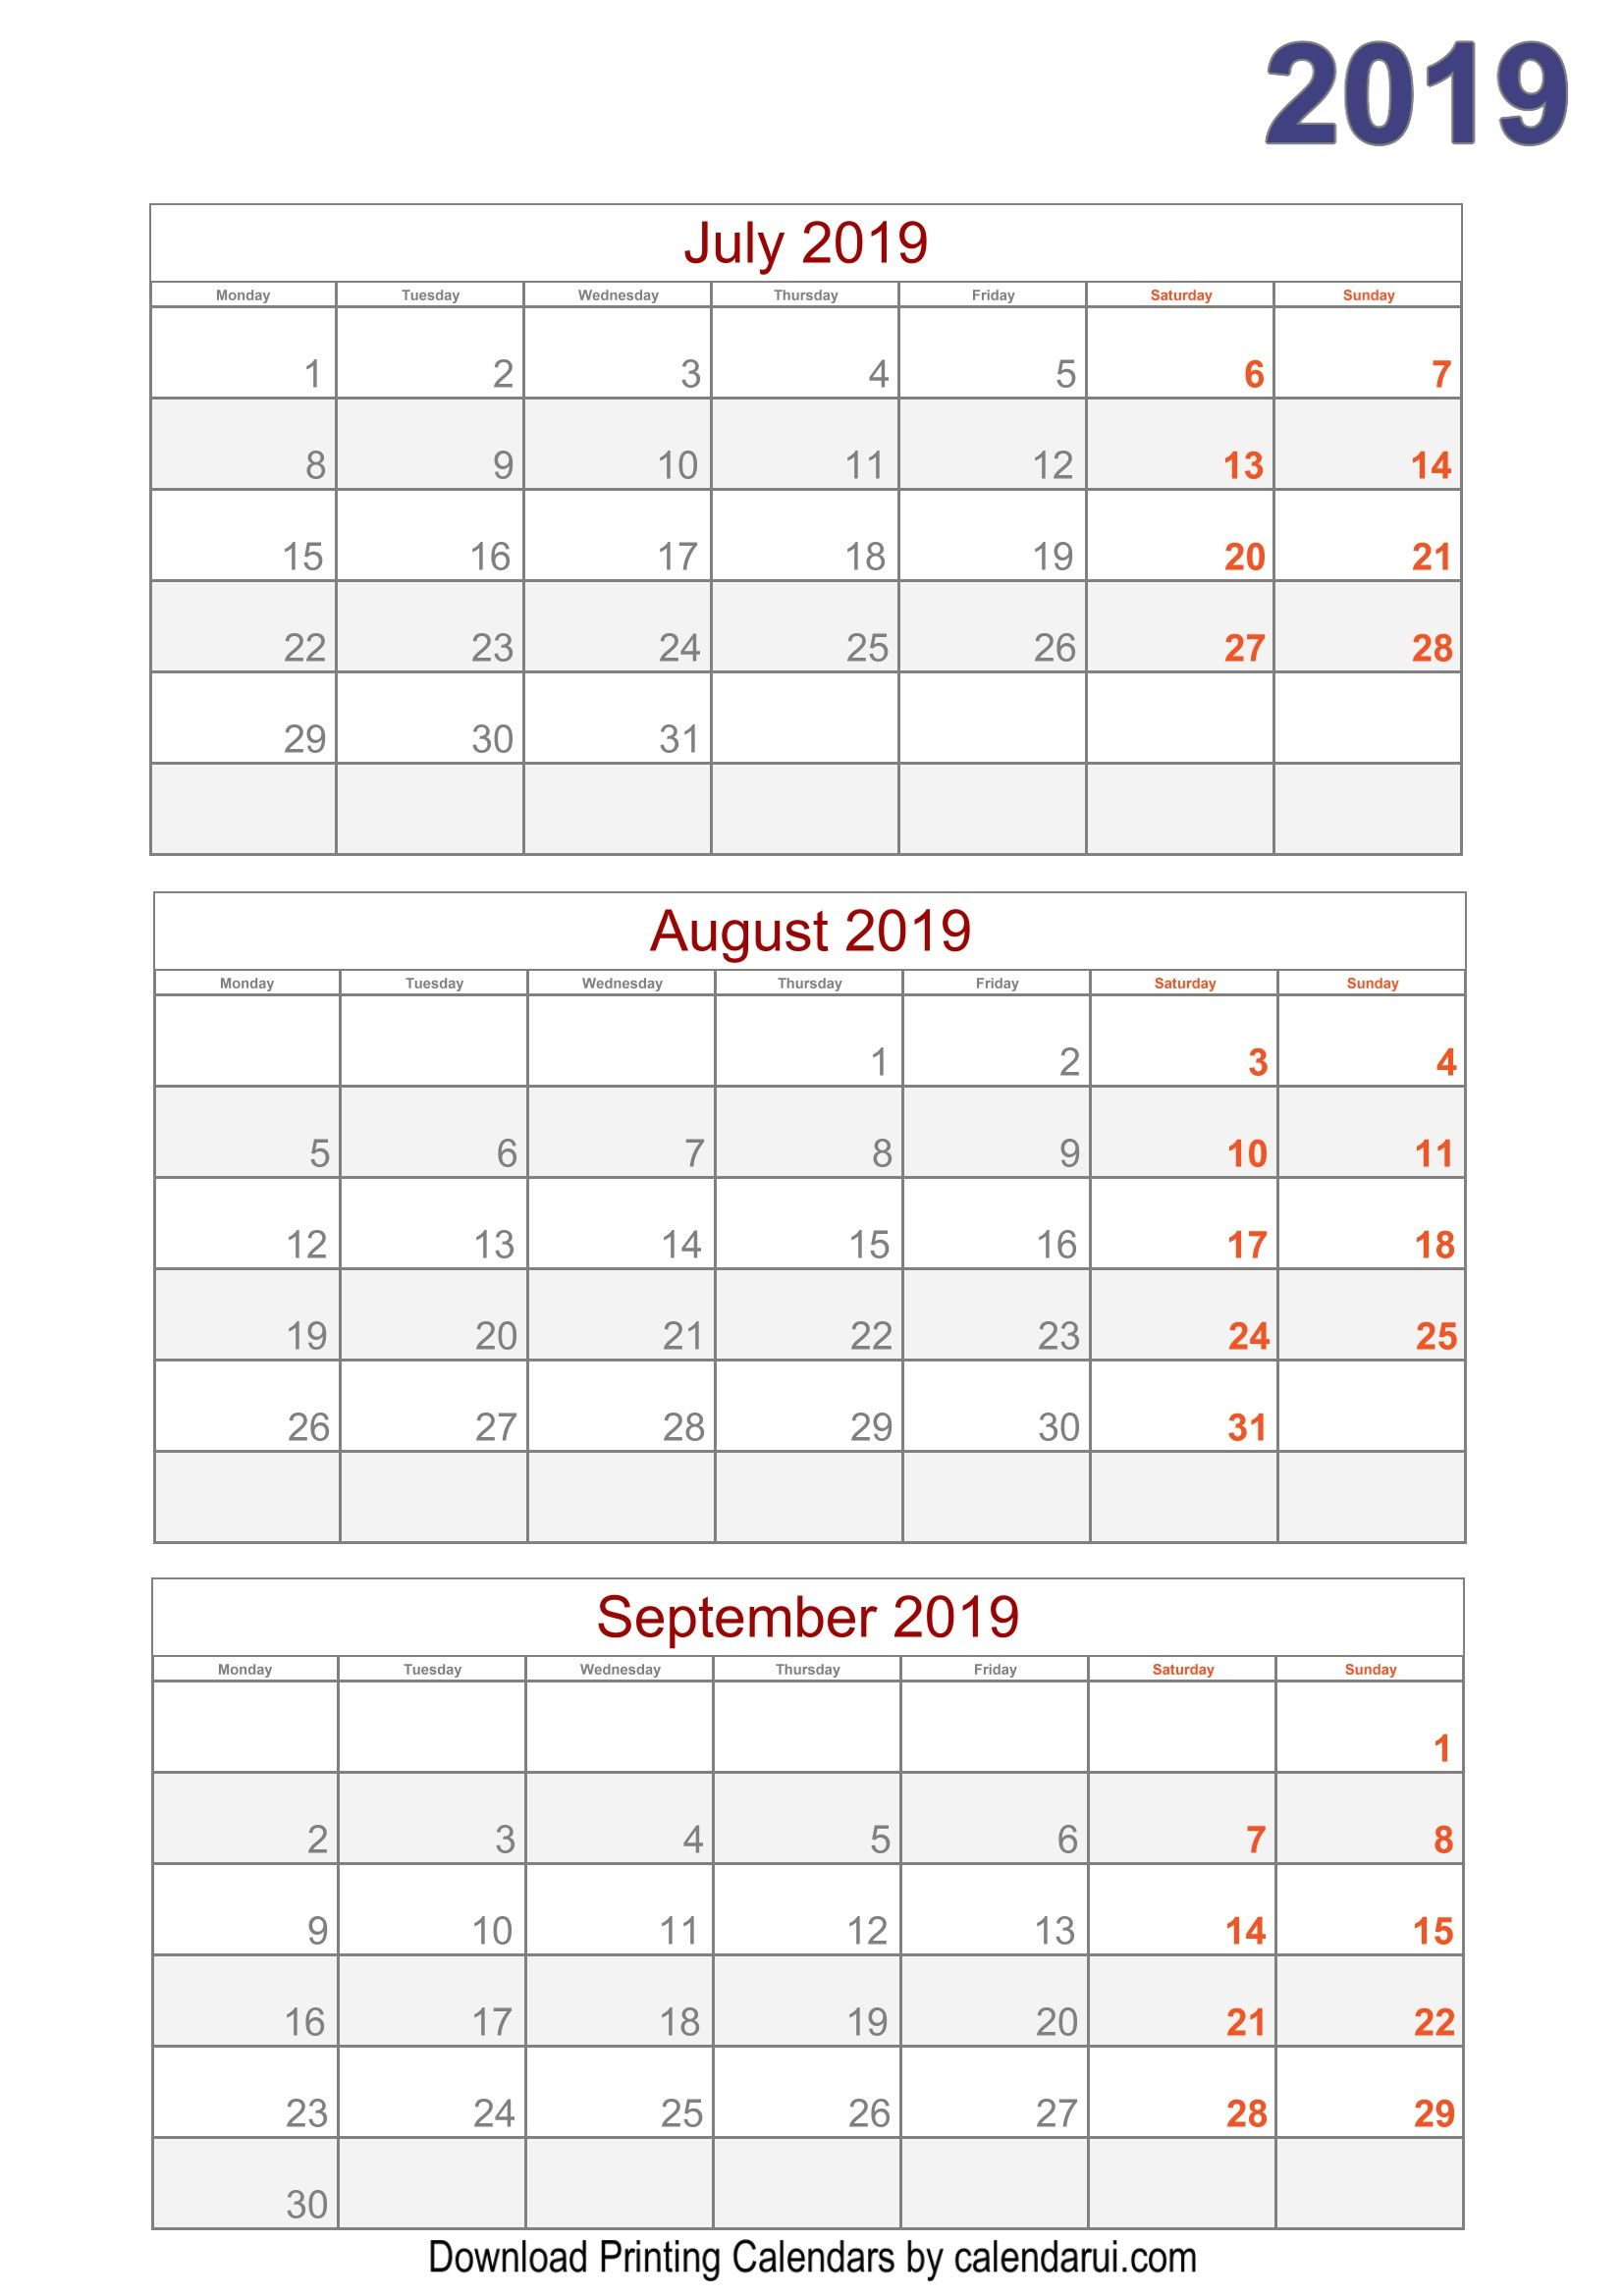 Download 2019 Quarterly Calendar Printable For Free